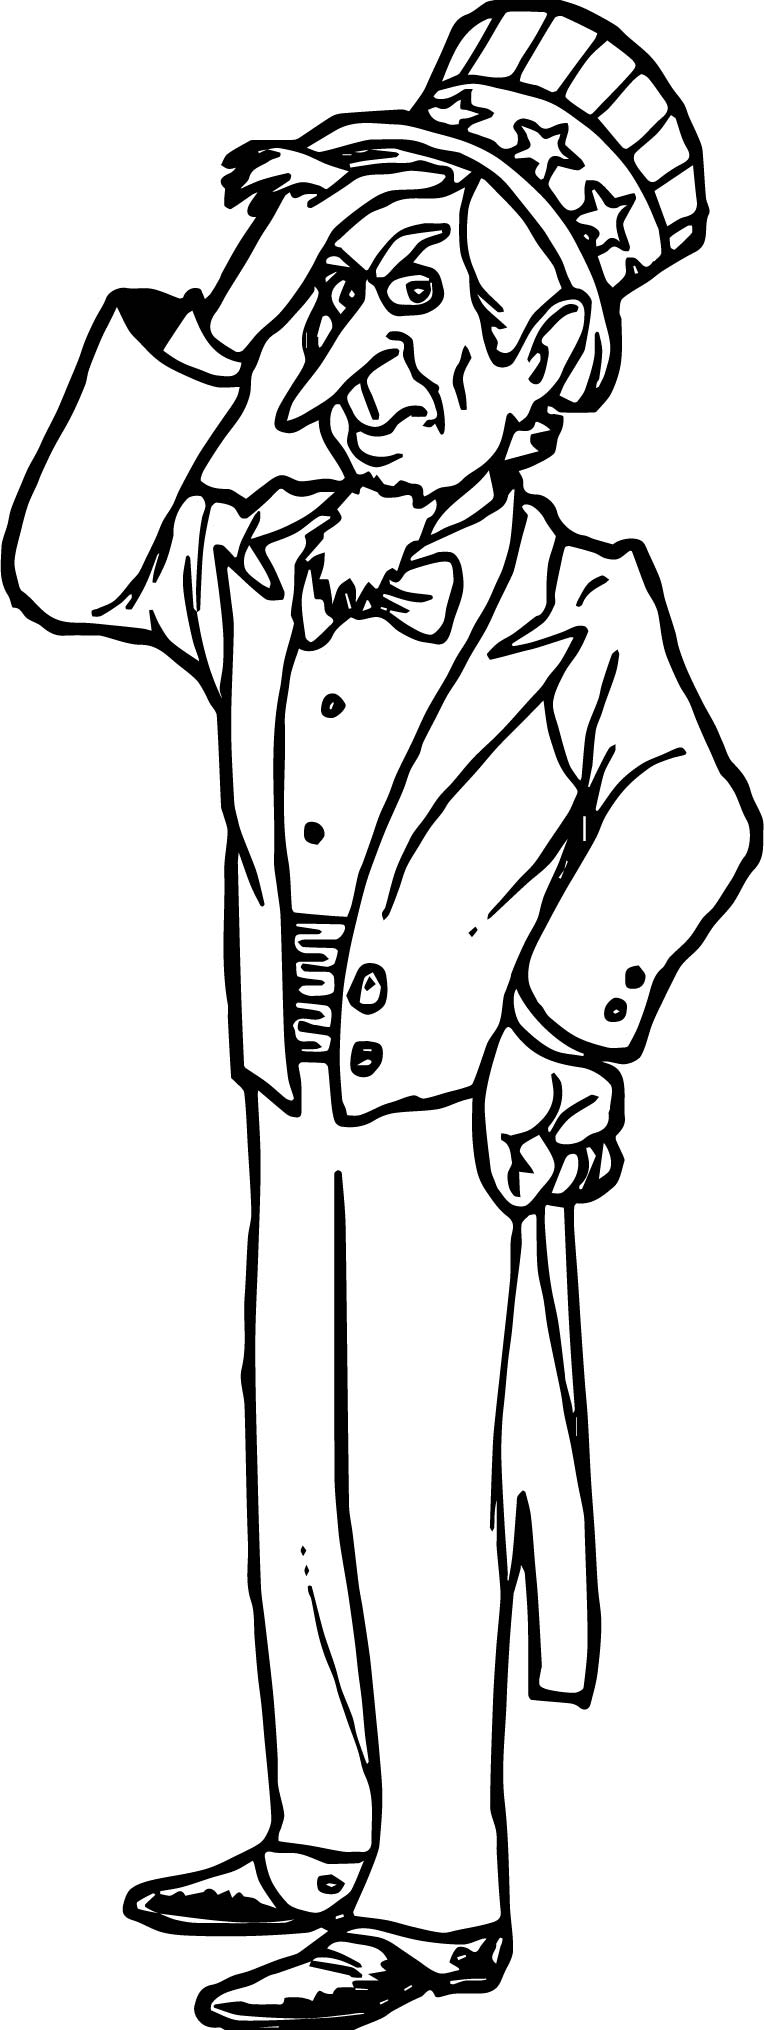 uncle coloring page - american revolution uncle sam cartoon patriotic coloring